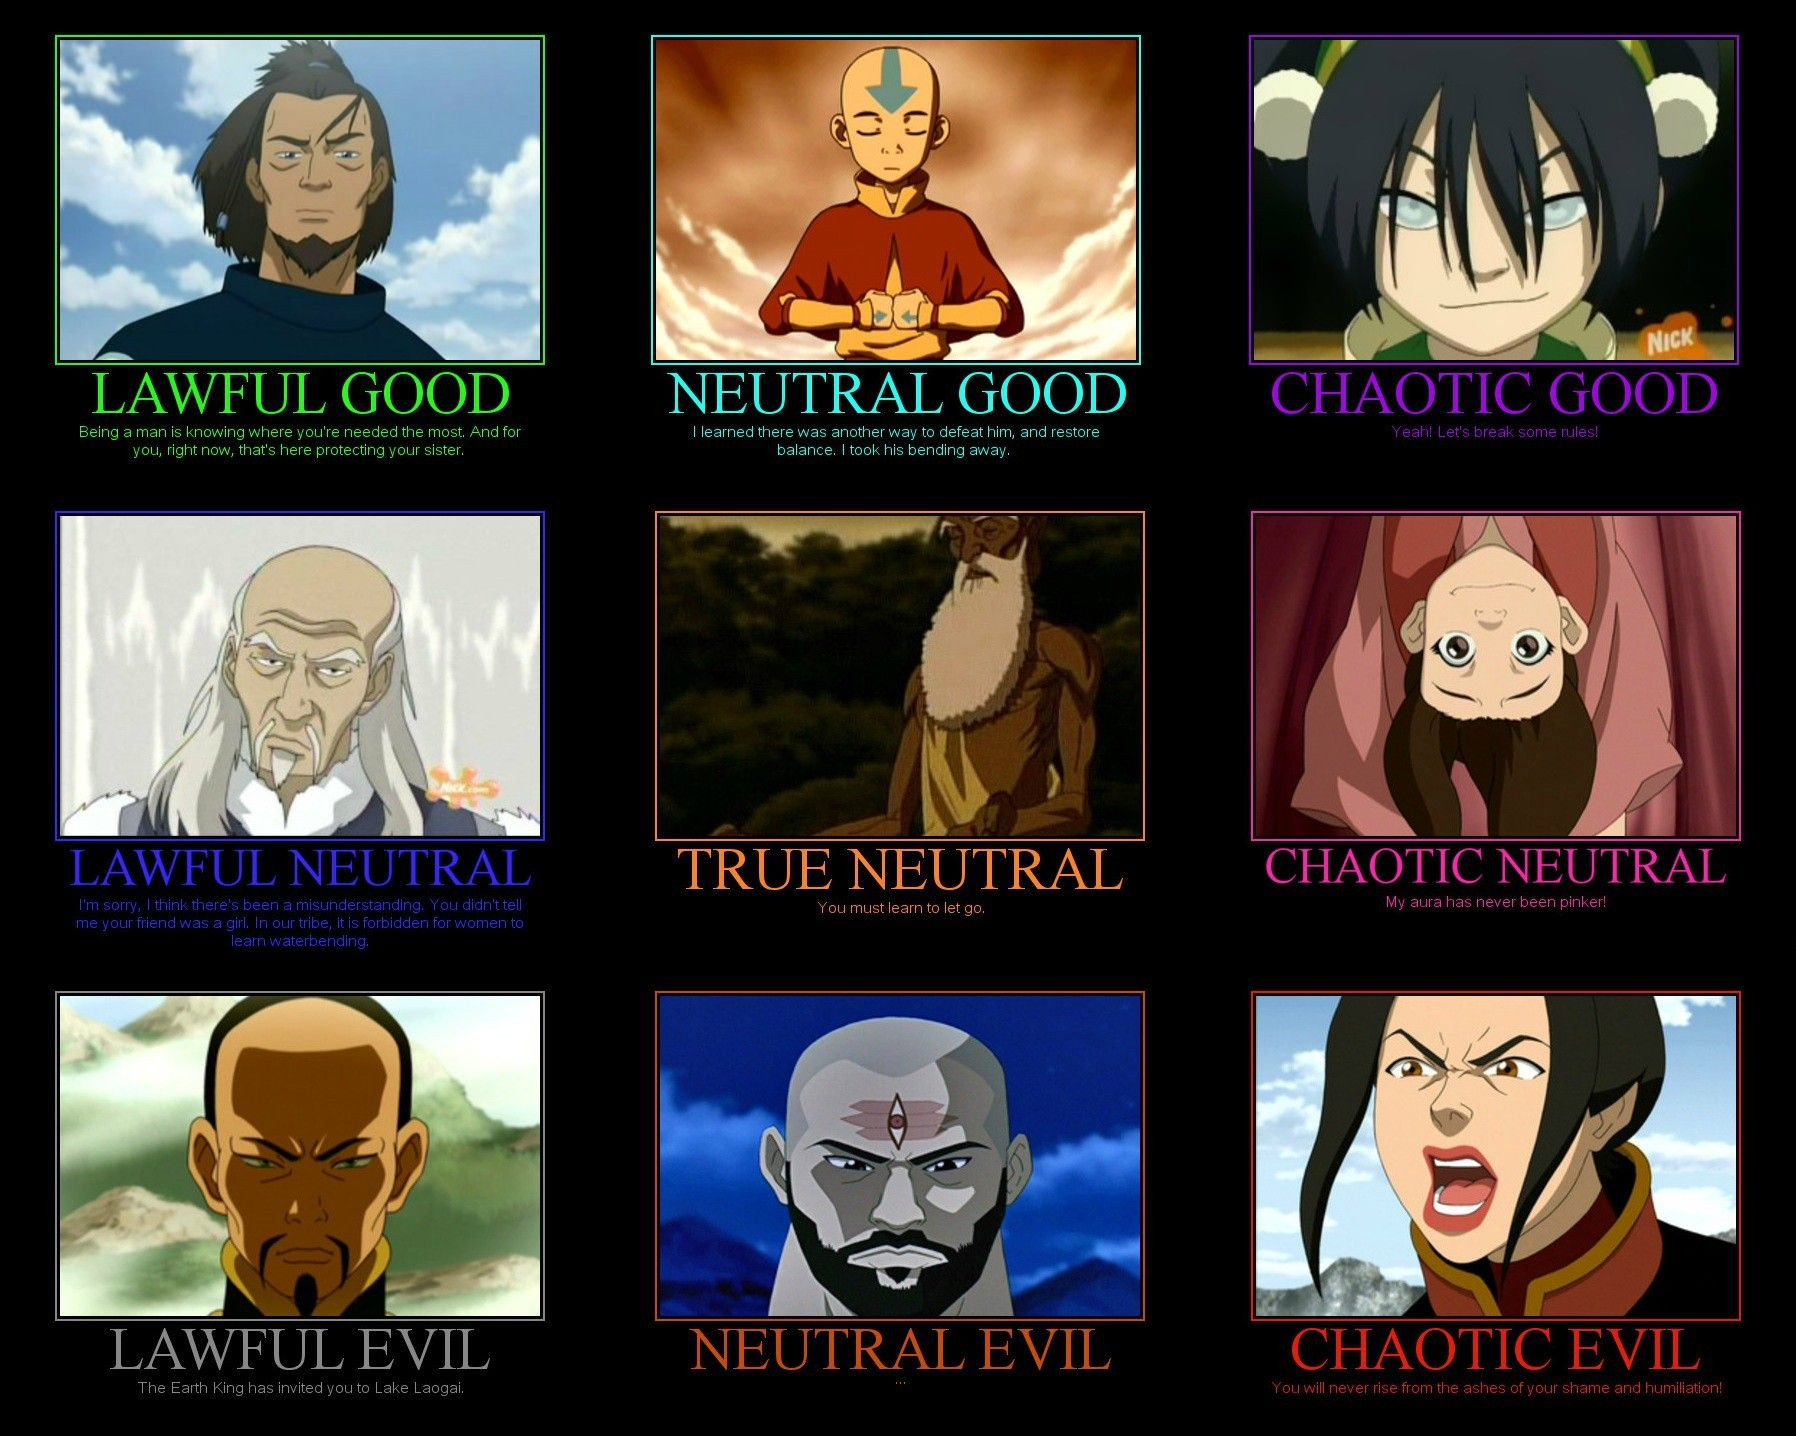 The most awesome images on the Avatar, Korra